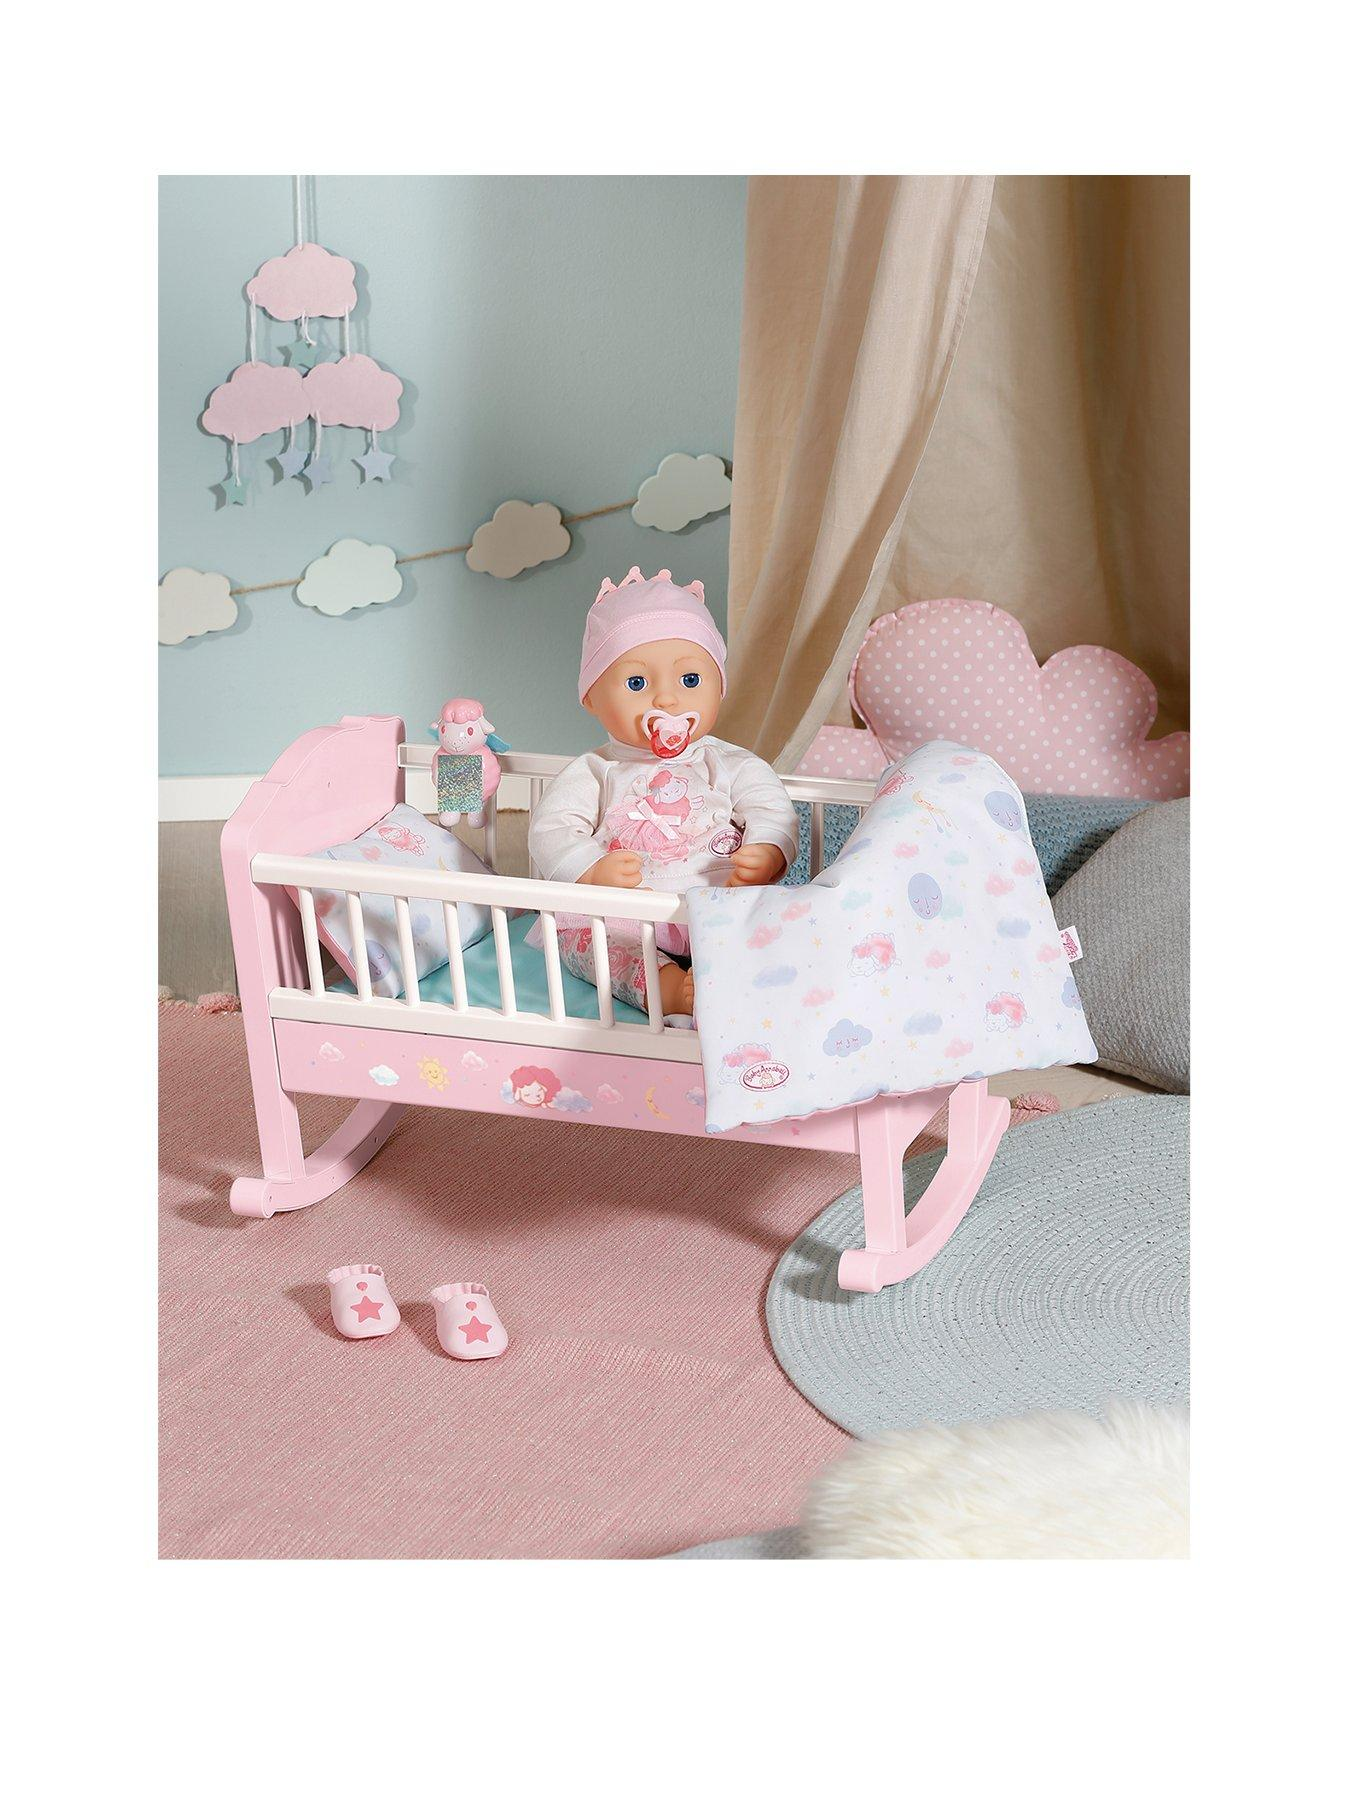 Compare prices for Baby Annabell Sweet Dreams Bed